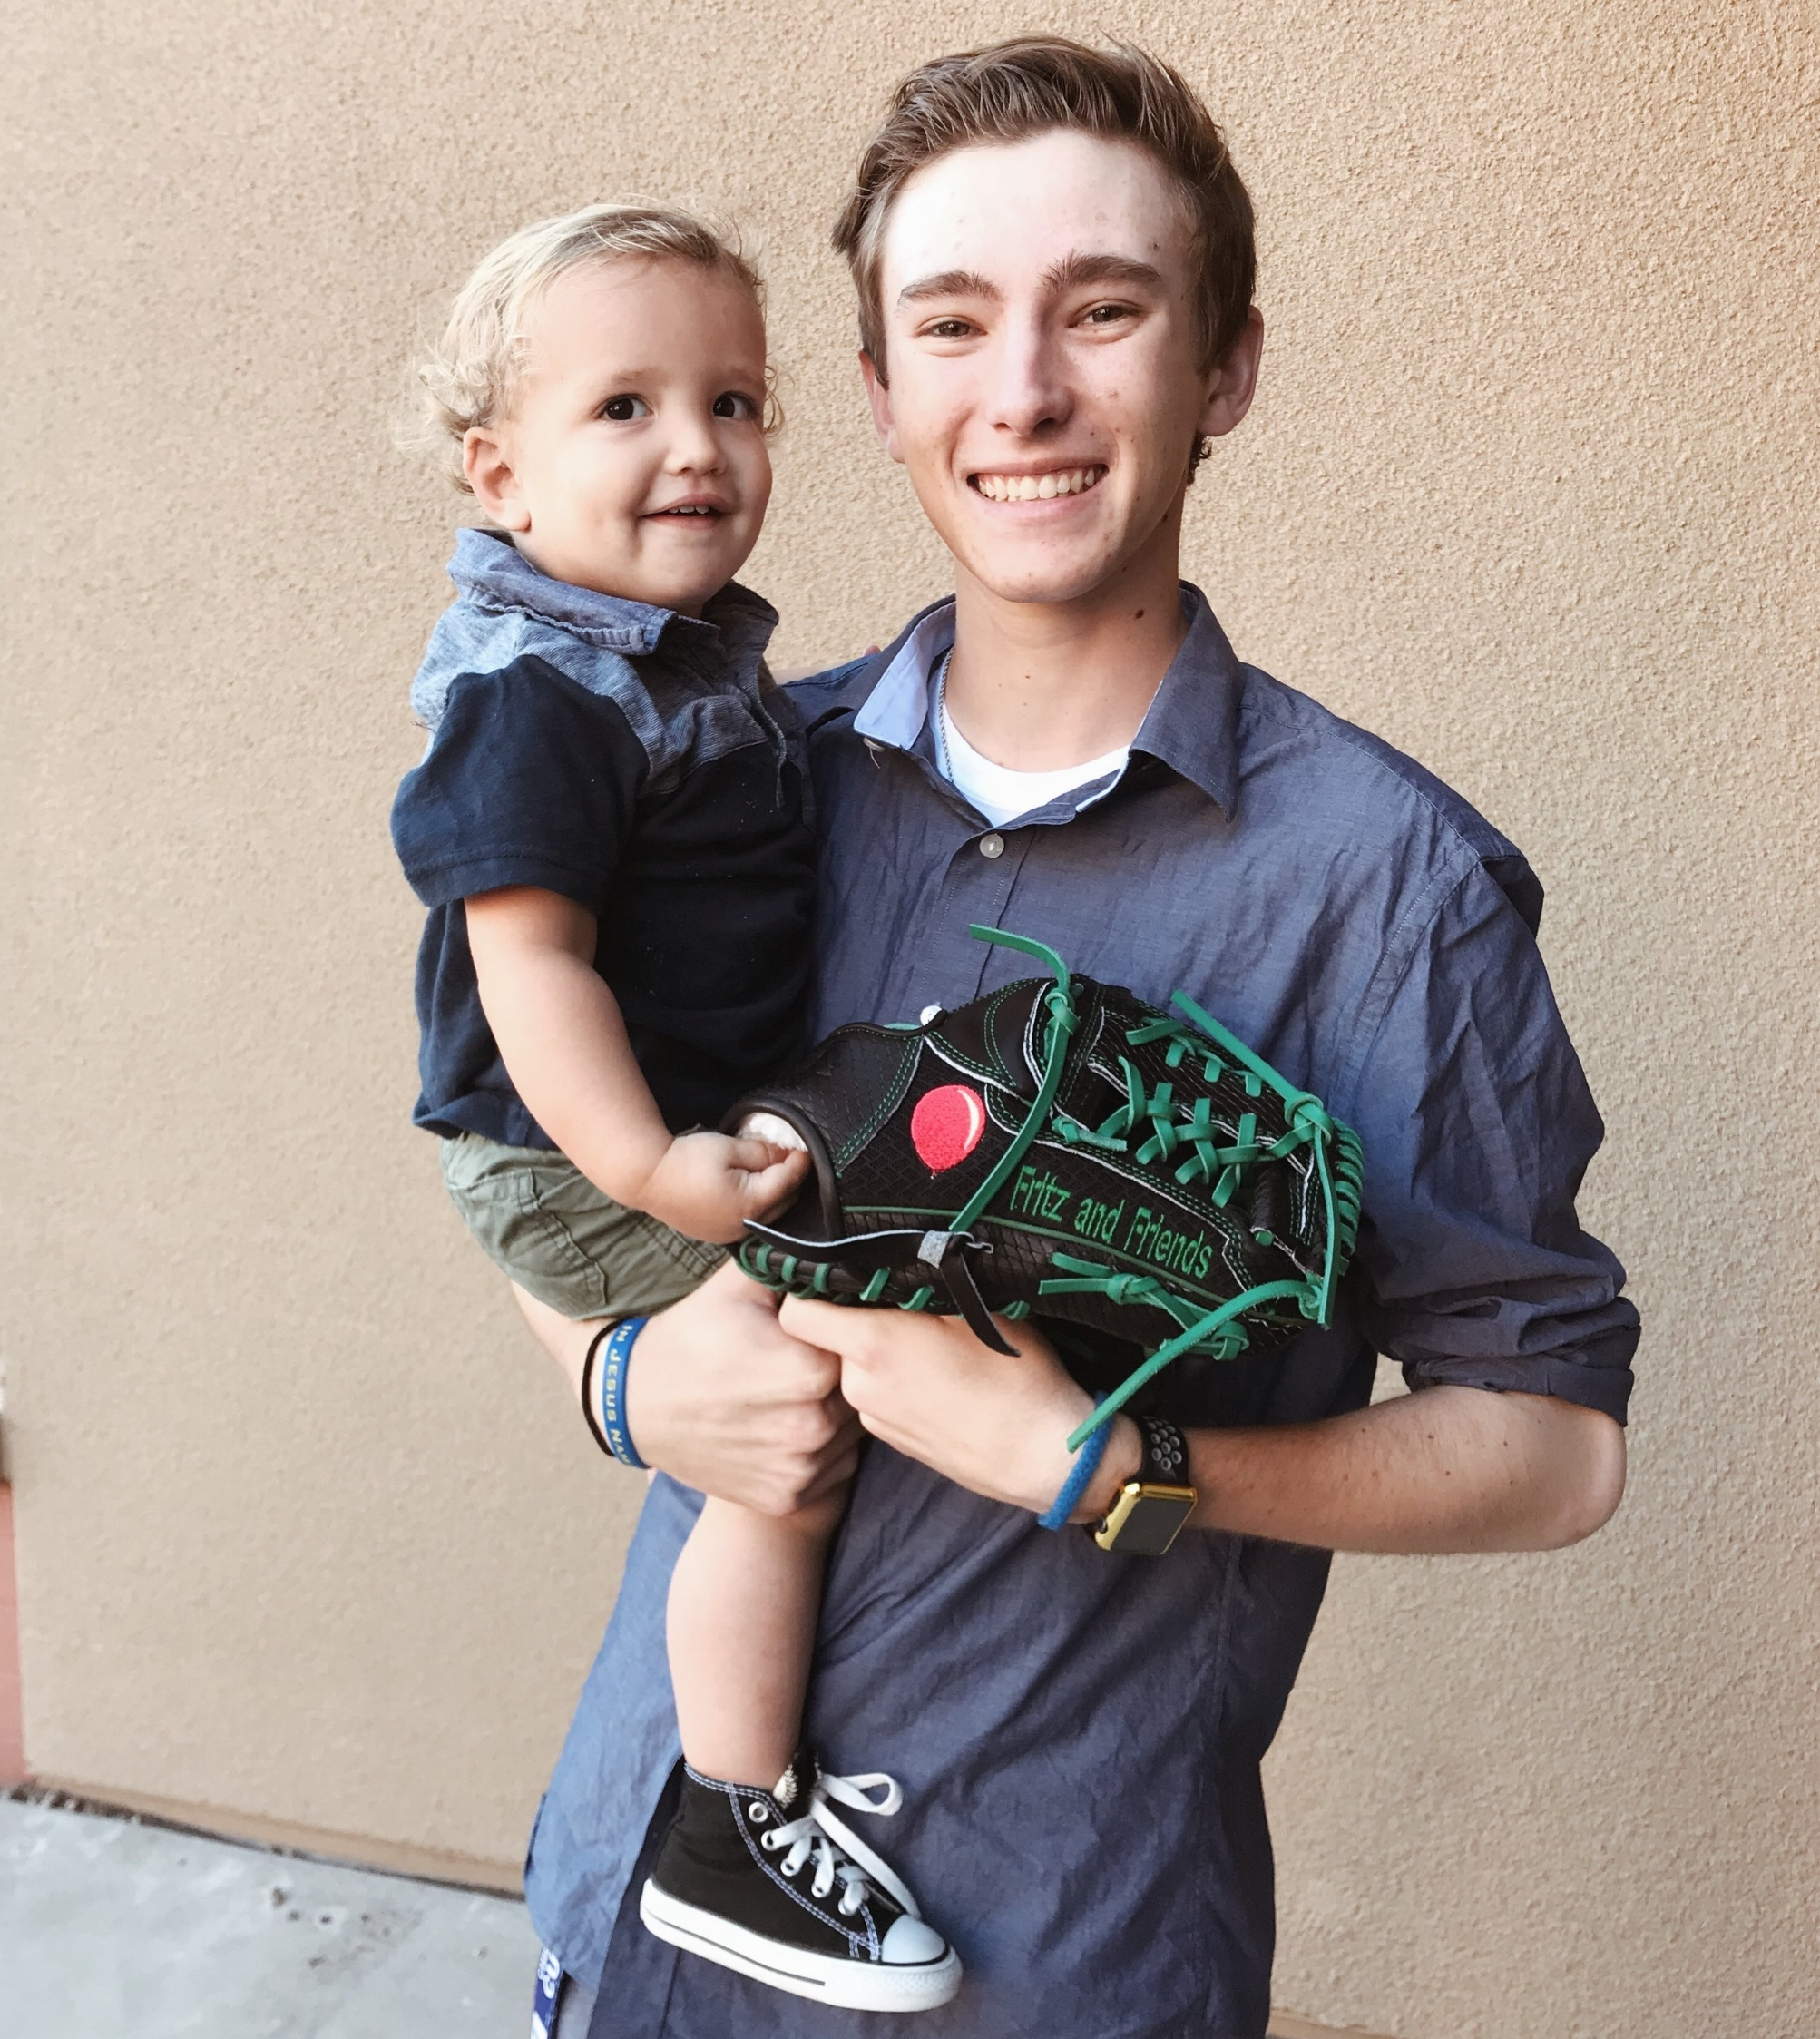 - Cade is a freshman at Providence Christian College in Pasadena, California. Cade will be pitching on the baseball team, and had his glove specially designed to bring awareness and strength to Duchenne Muscular Dystrophy. We couldn't be more honored.